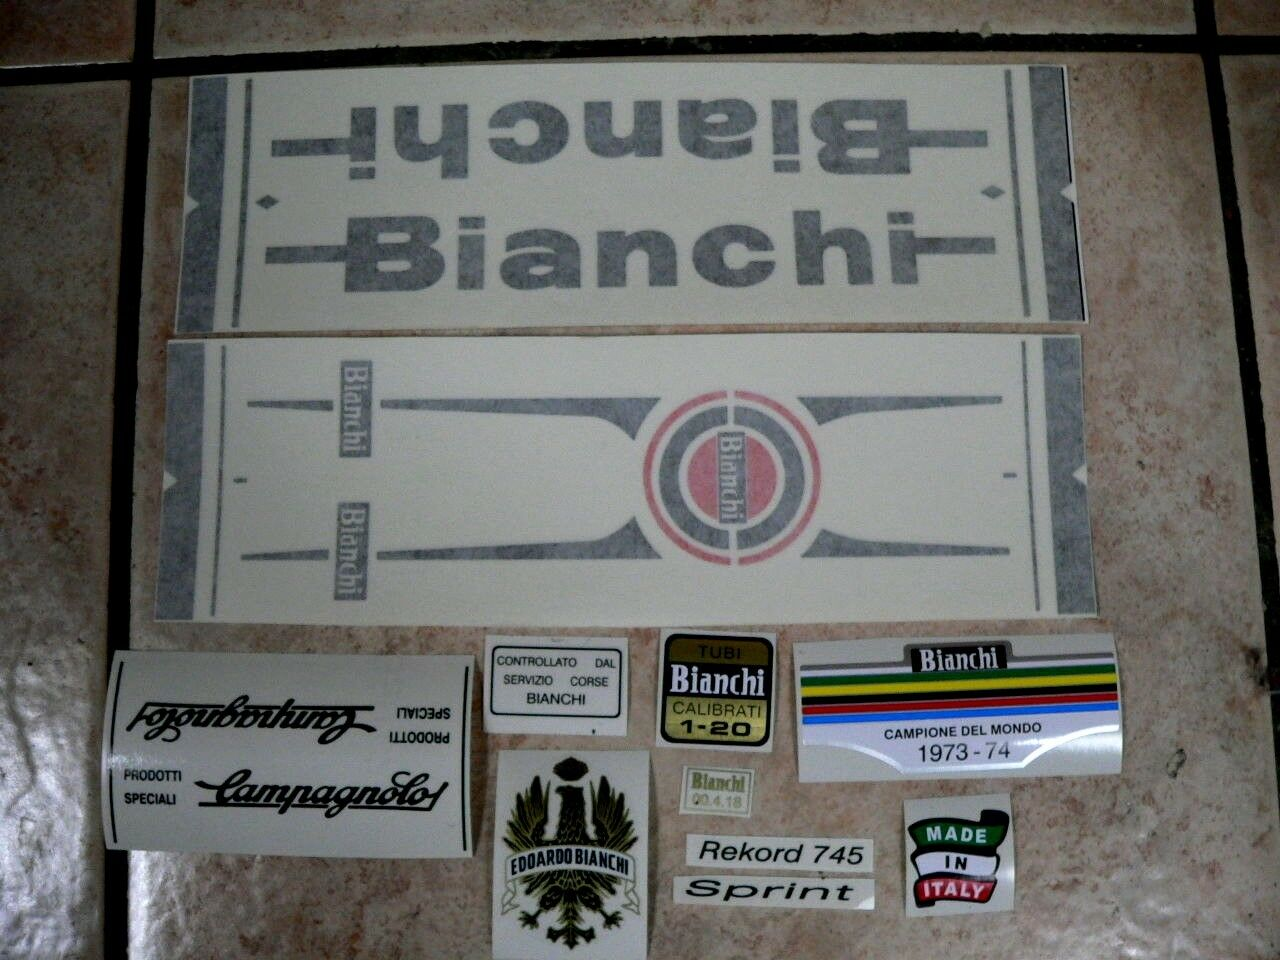 Bianchi 03 bici Bike 03 Bianchi Vinyl Decals Stickers Frame Replacement Set vintage adesivi 71bdaf